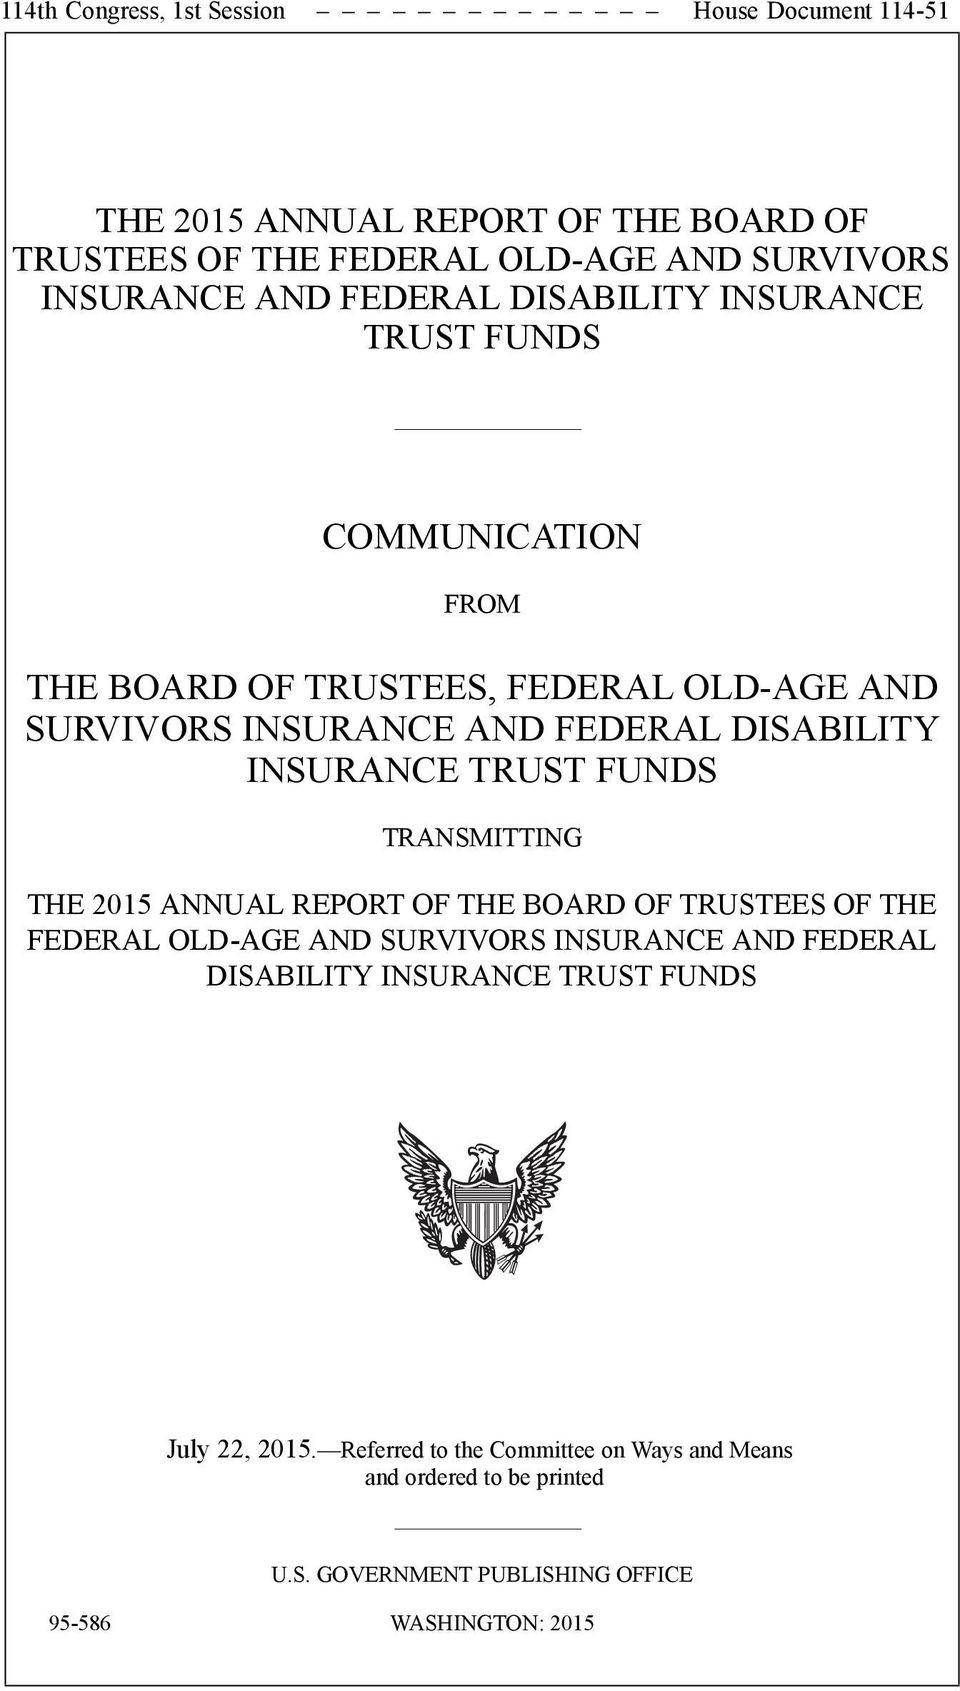 INSURANCE TRUST FUNDS TRANSMITTING THE 2015 ANNUAL REPORT OF THE BOARD OF TRUSTEES OF THE FEDERAL OLD-AGE AND SURVIVORS INSURANCE AND FEDERAL DISABILITY